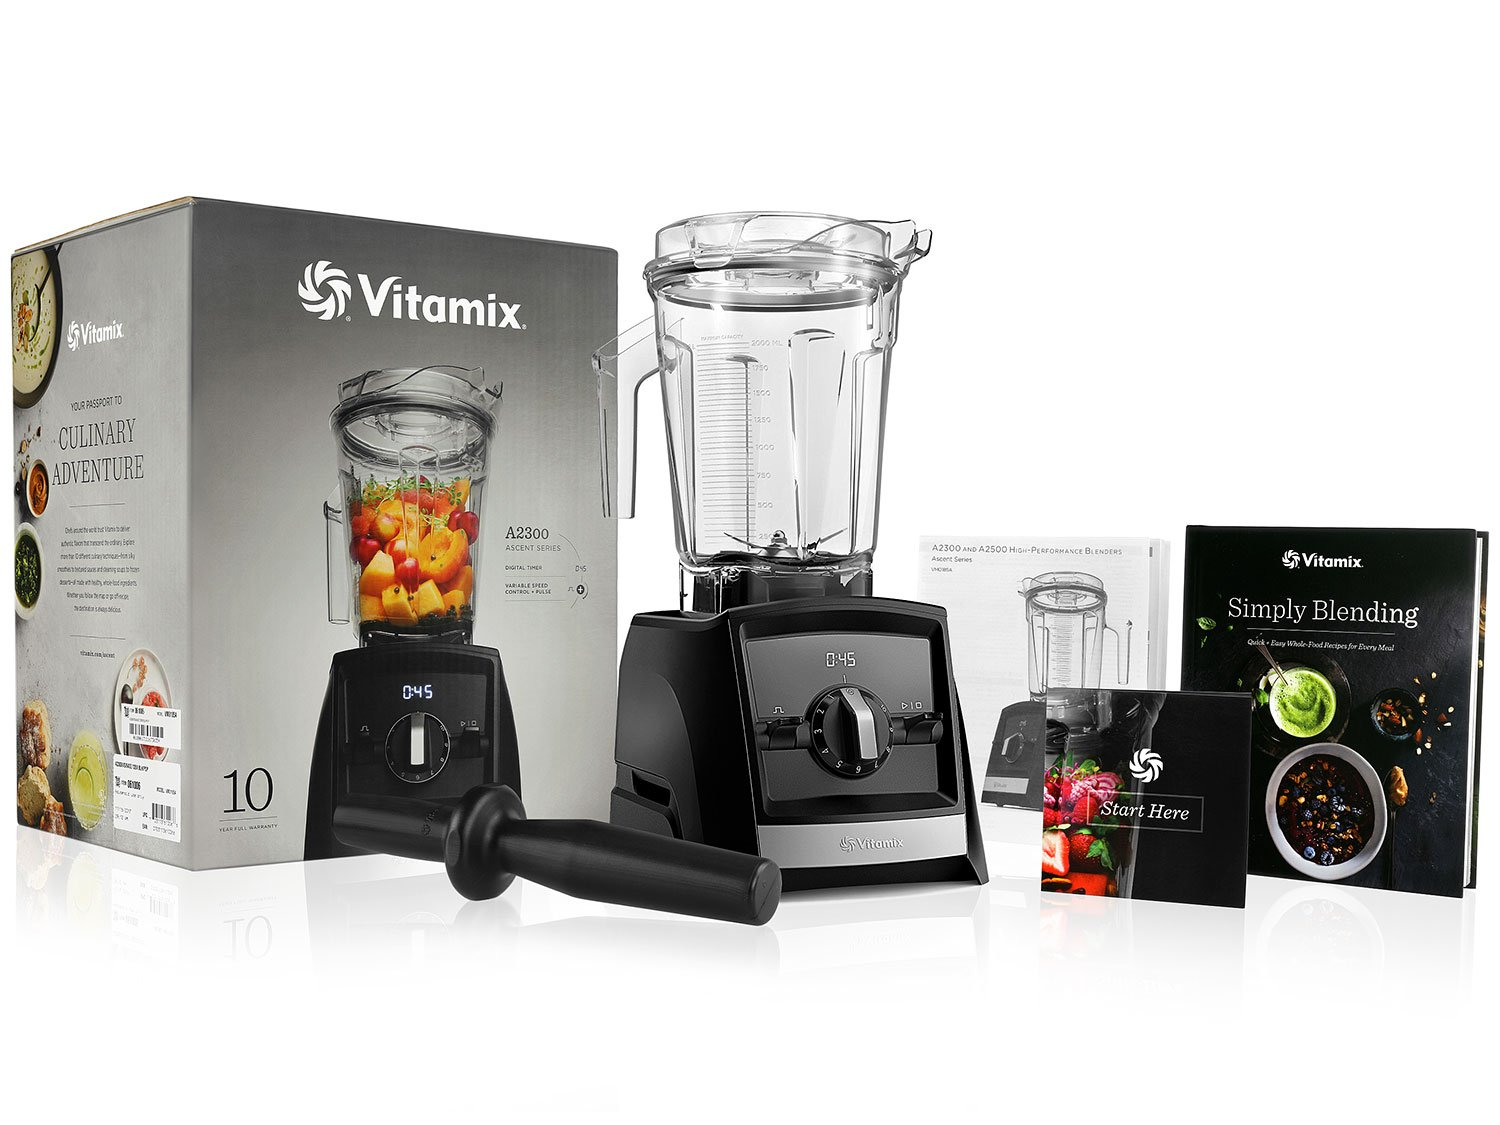 Vitamix A2300 Ascent Series Blender with 64-Ounce Container Vitamix Simply Blending Blending Recipe Cookbook Low-Profile Tamper 10-Year Full Warranty – Black